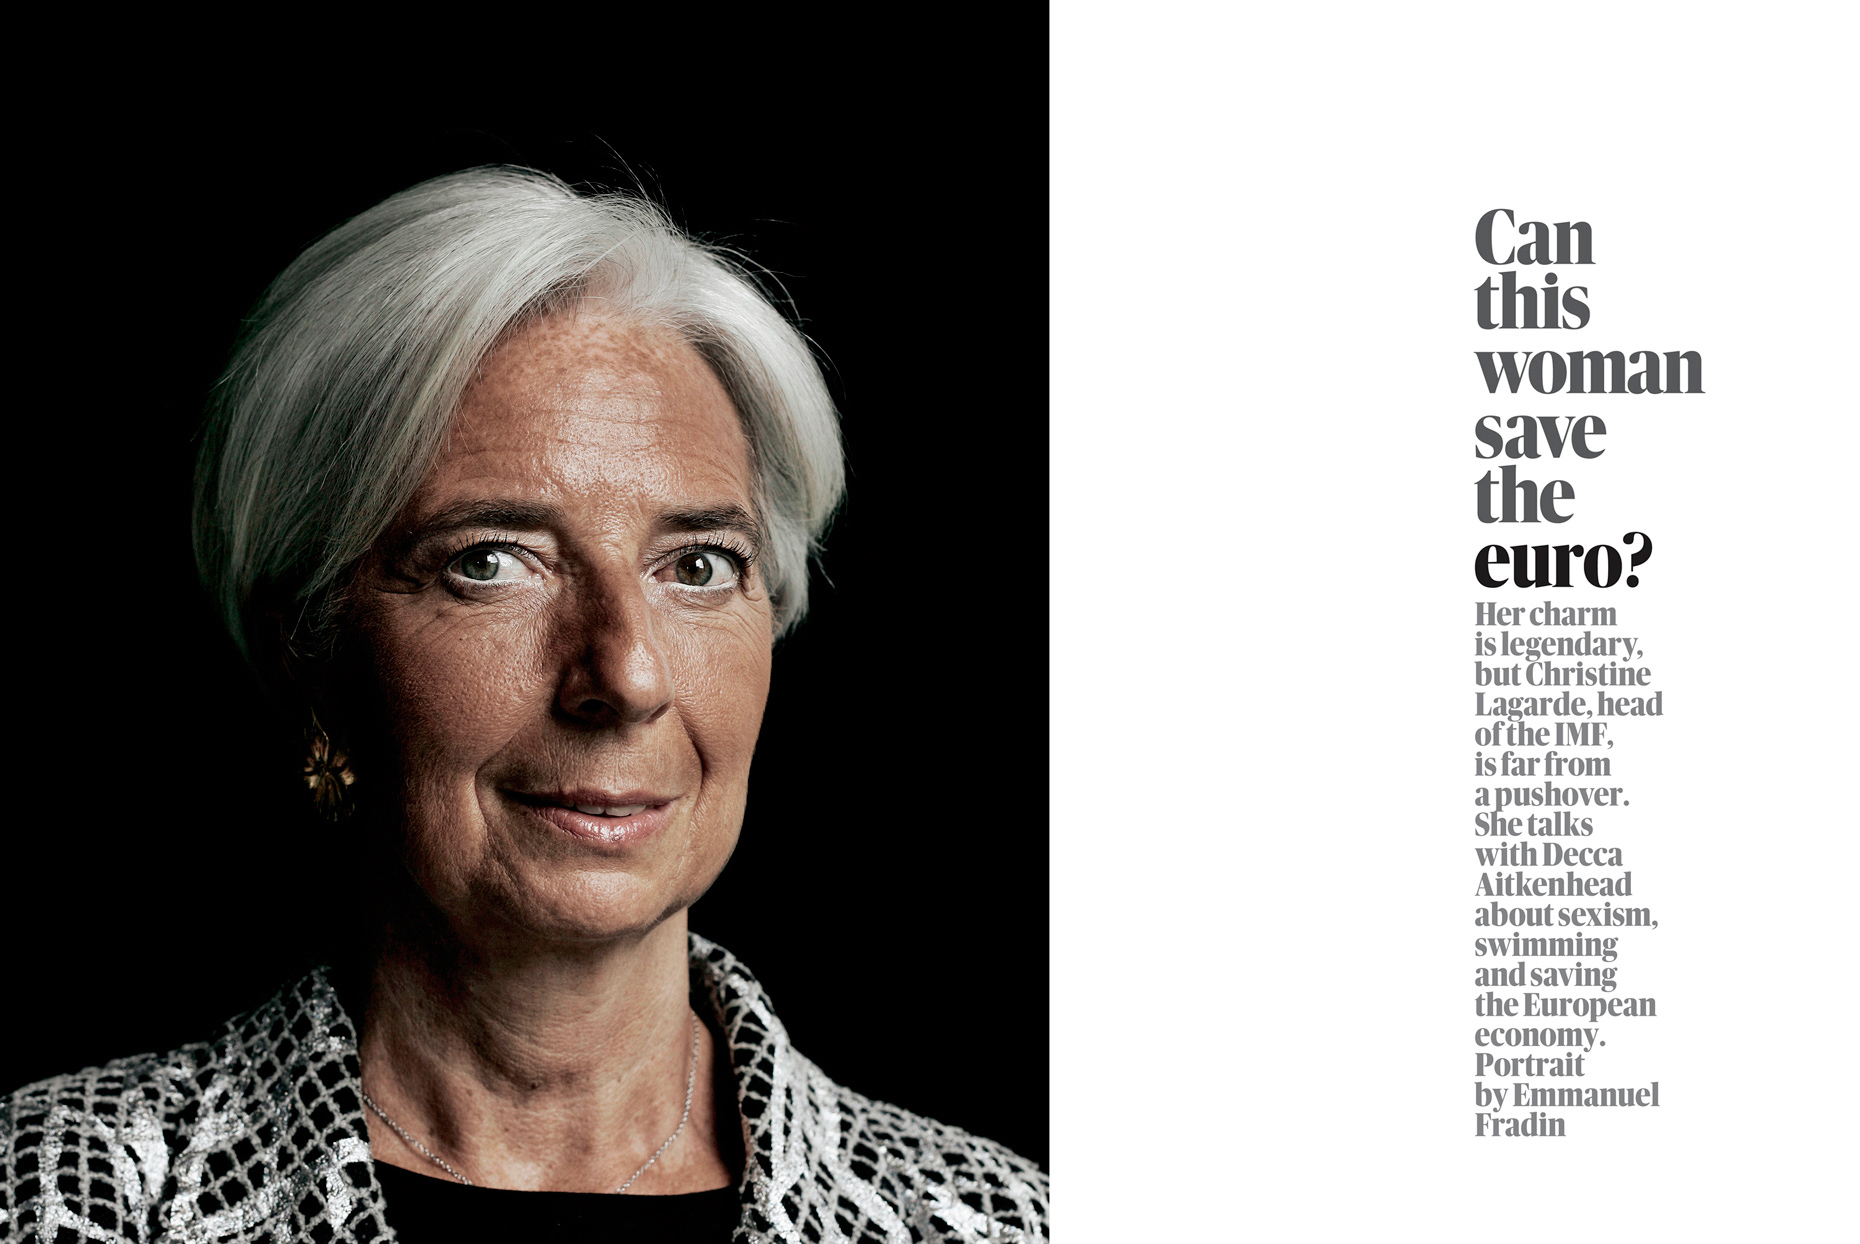 For the Guardian Week End Magazine - Christine Lagarde Managing Director of the International Monetary Fund.